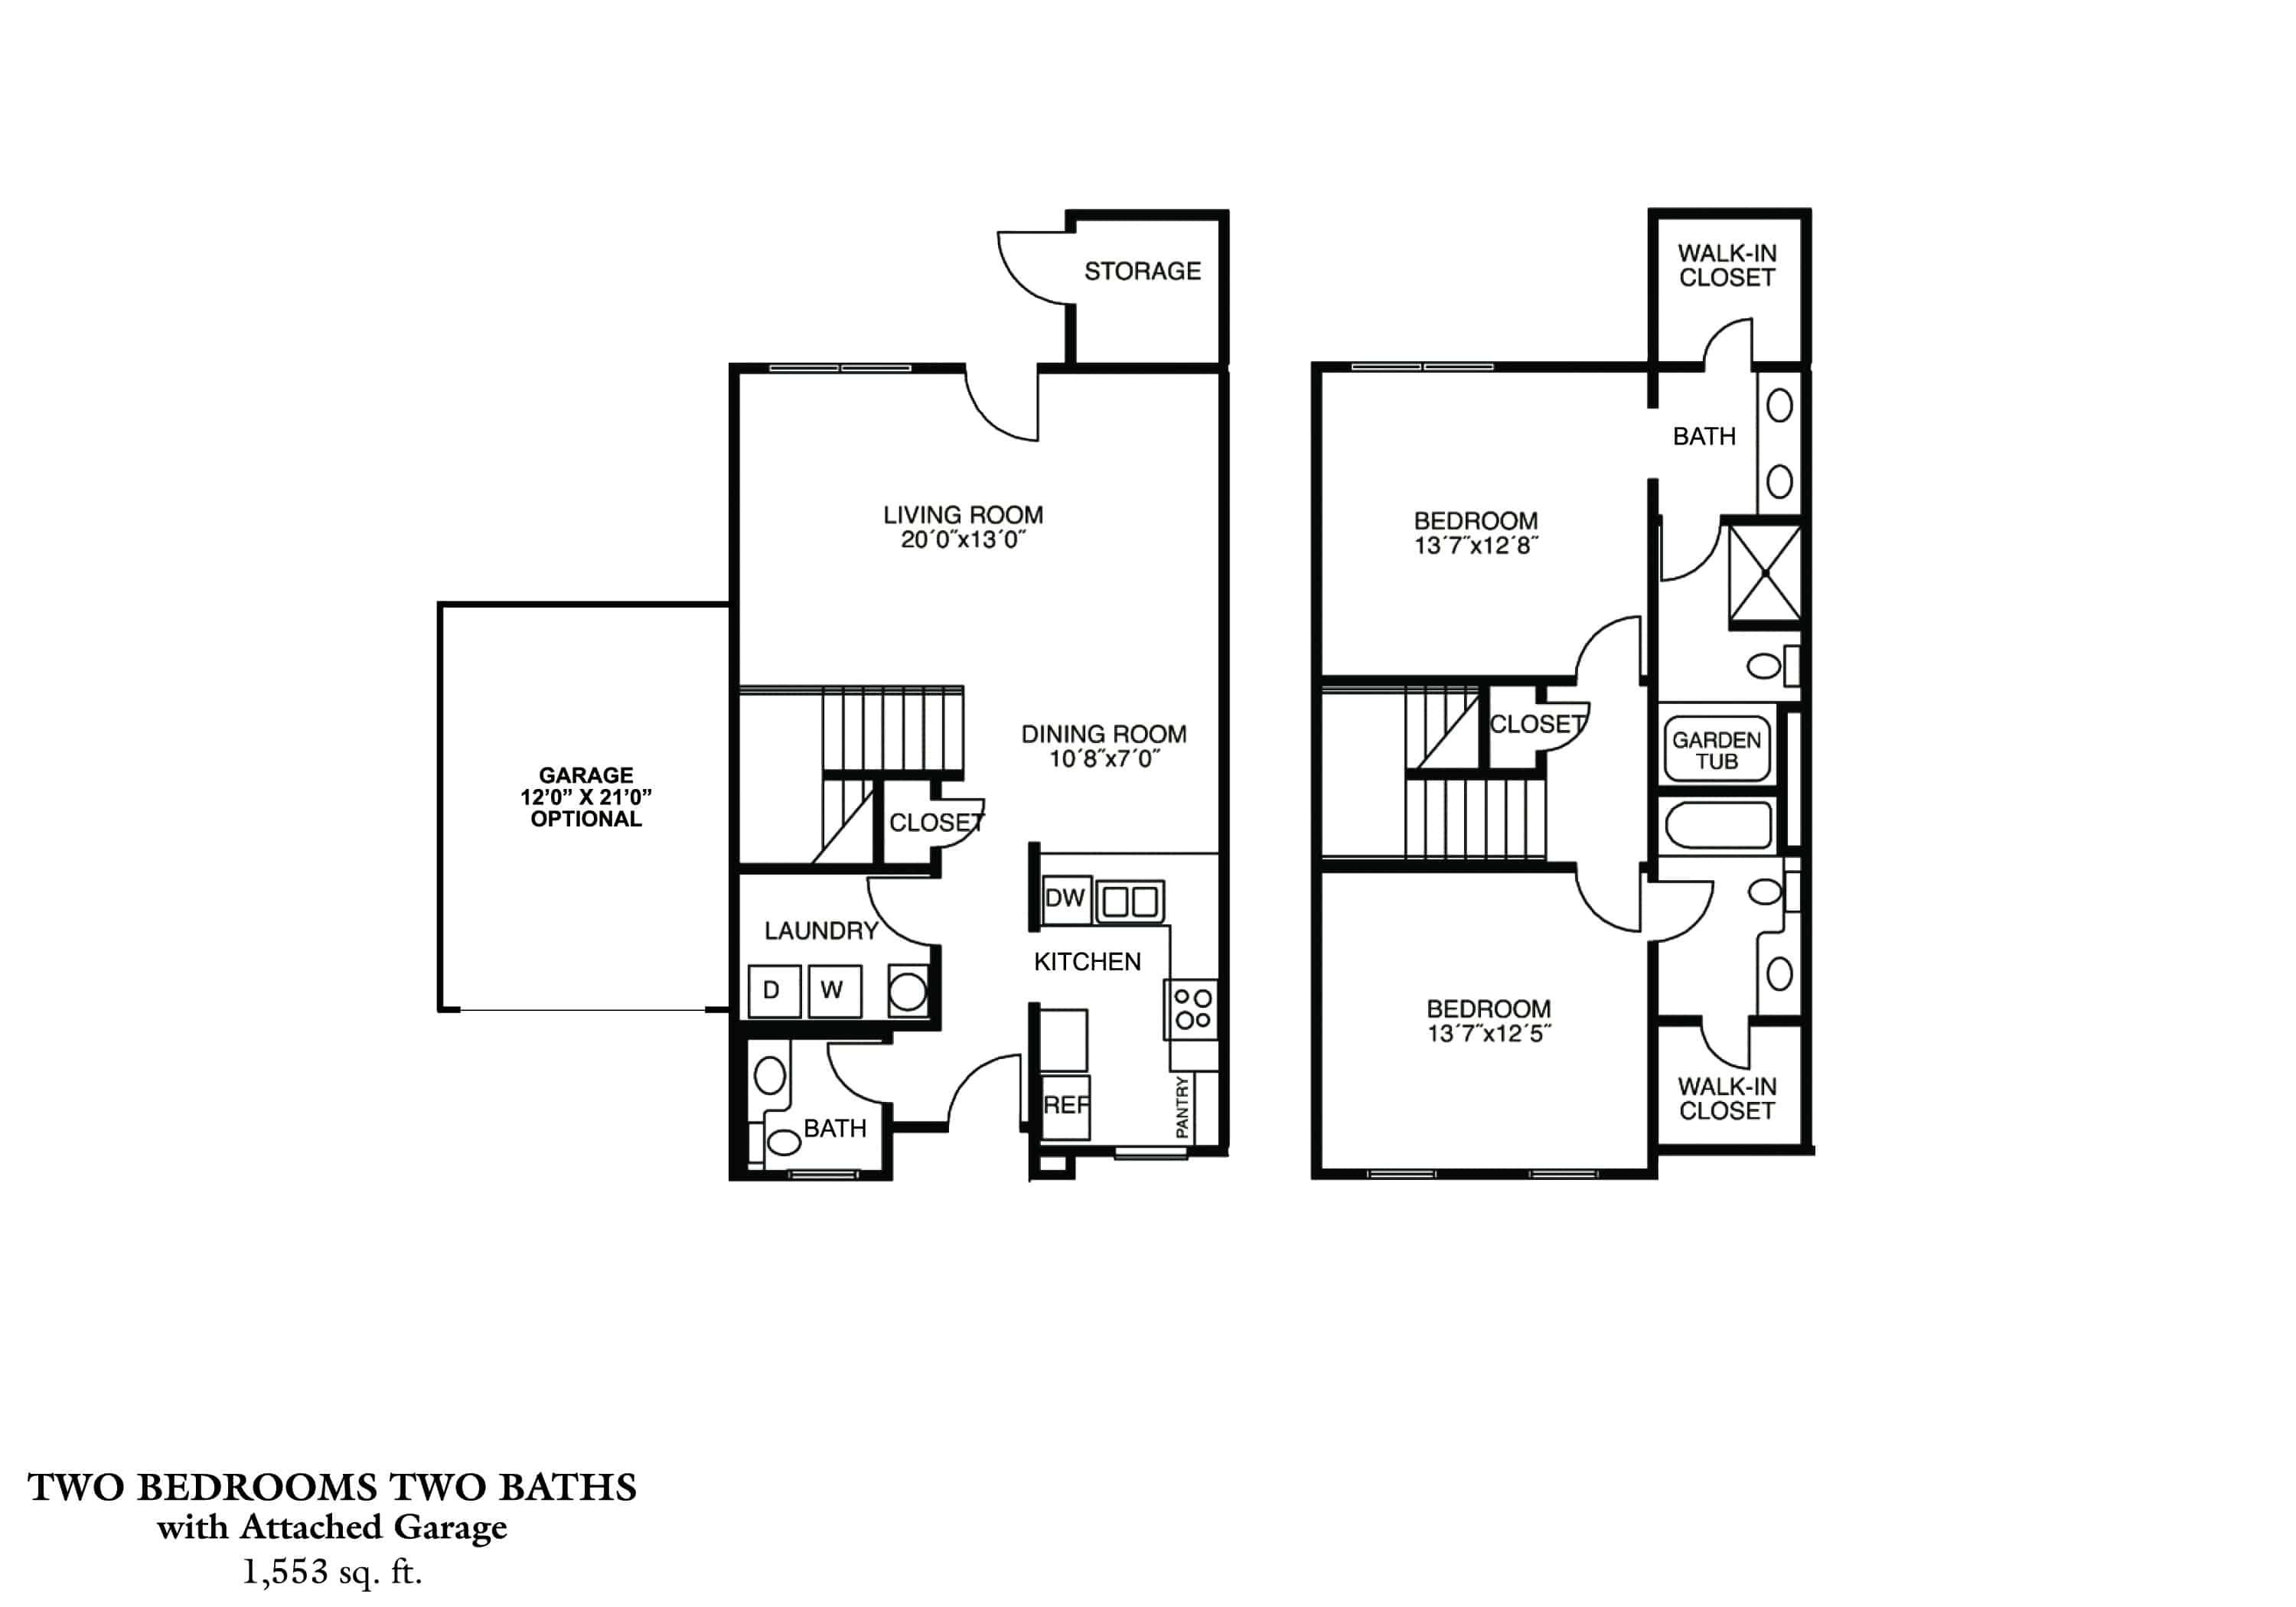 Greystone Properties Columbus, GA Apartments Two Bedroom Townhomes - PHASE I & PHASE II Approx. 1,553 sq. ft. Beds 2 Baths 2.5